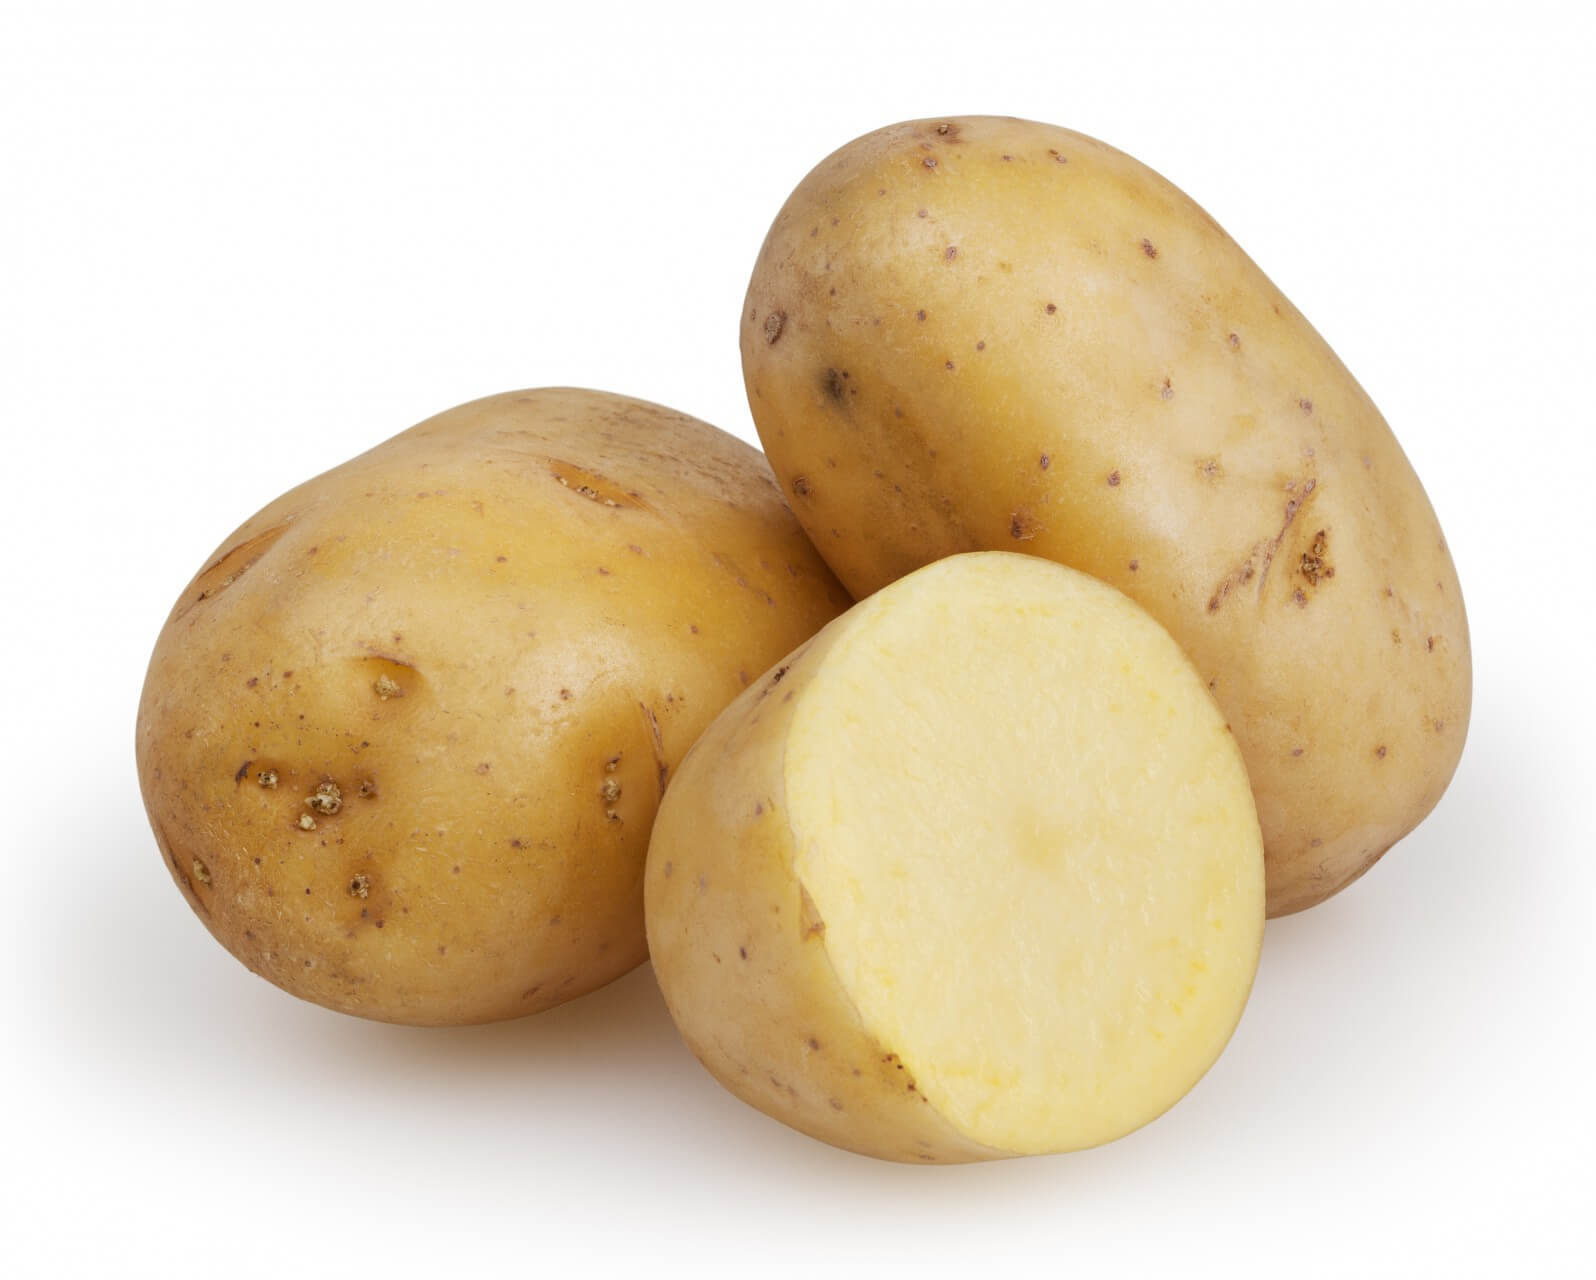 Image result for potato transparent background